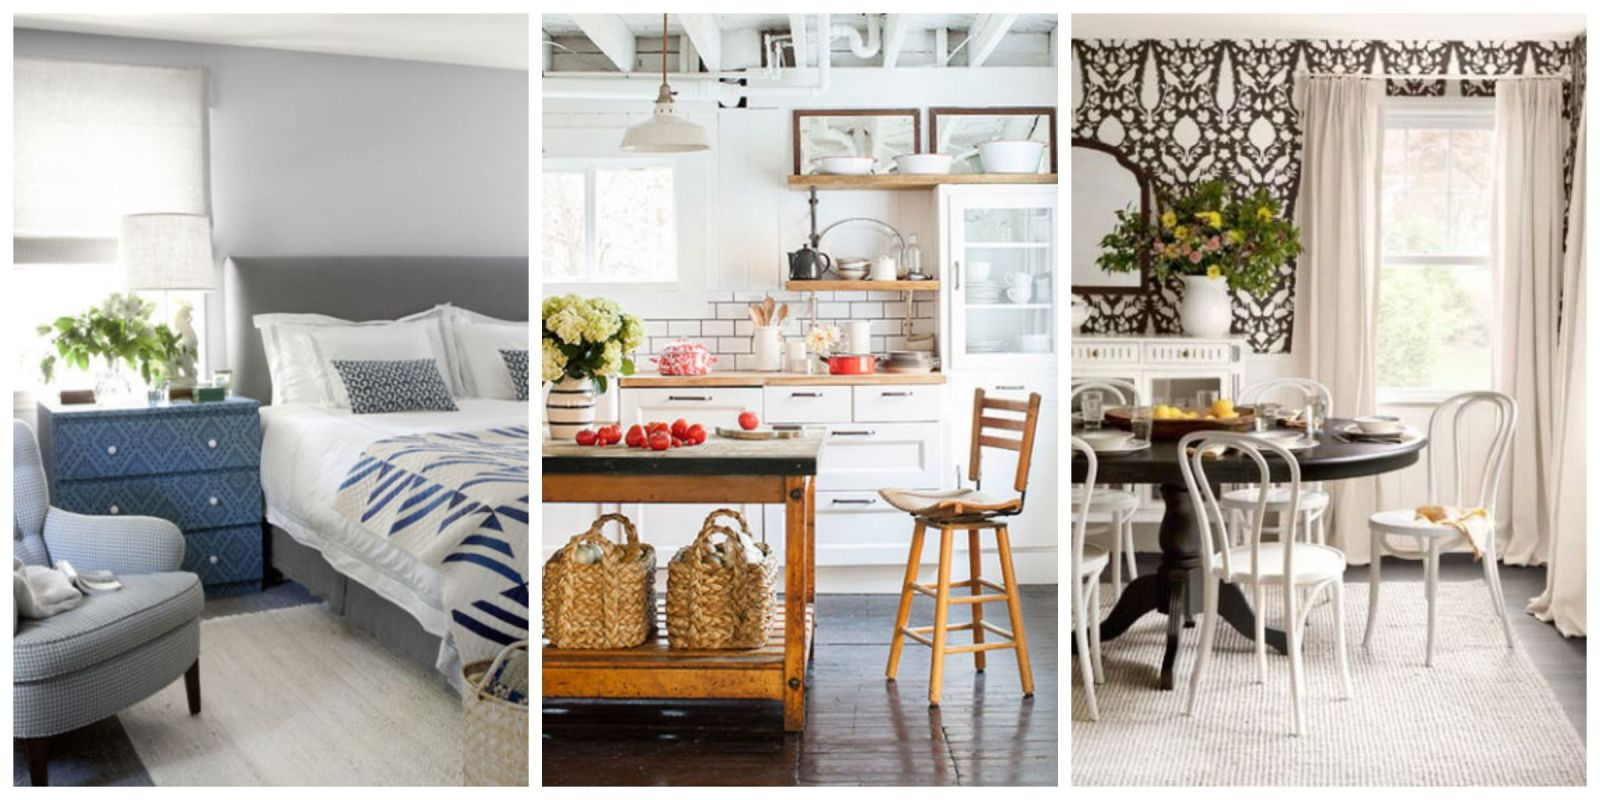 65 home makeover ideas before and after home makeovers Before and after interior design projects